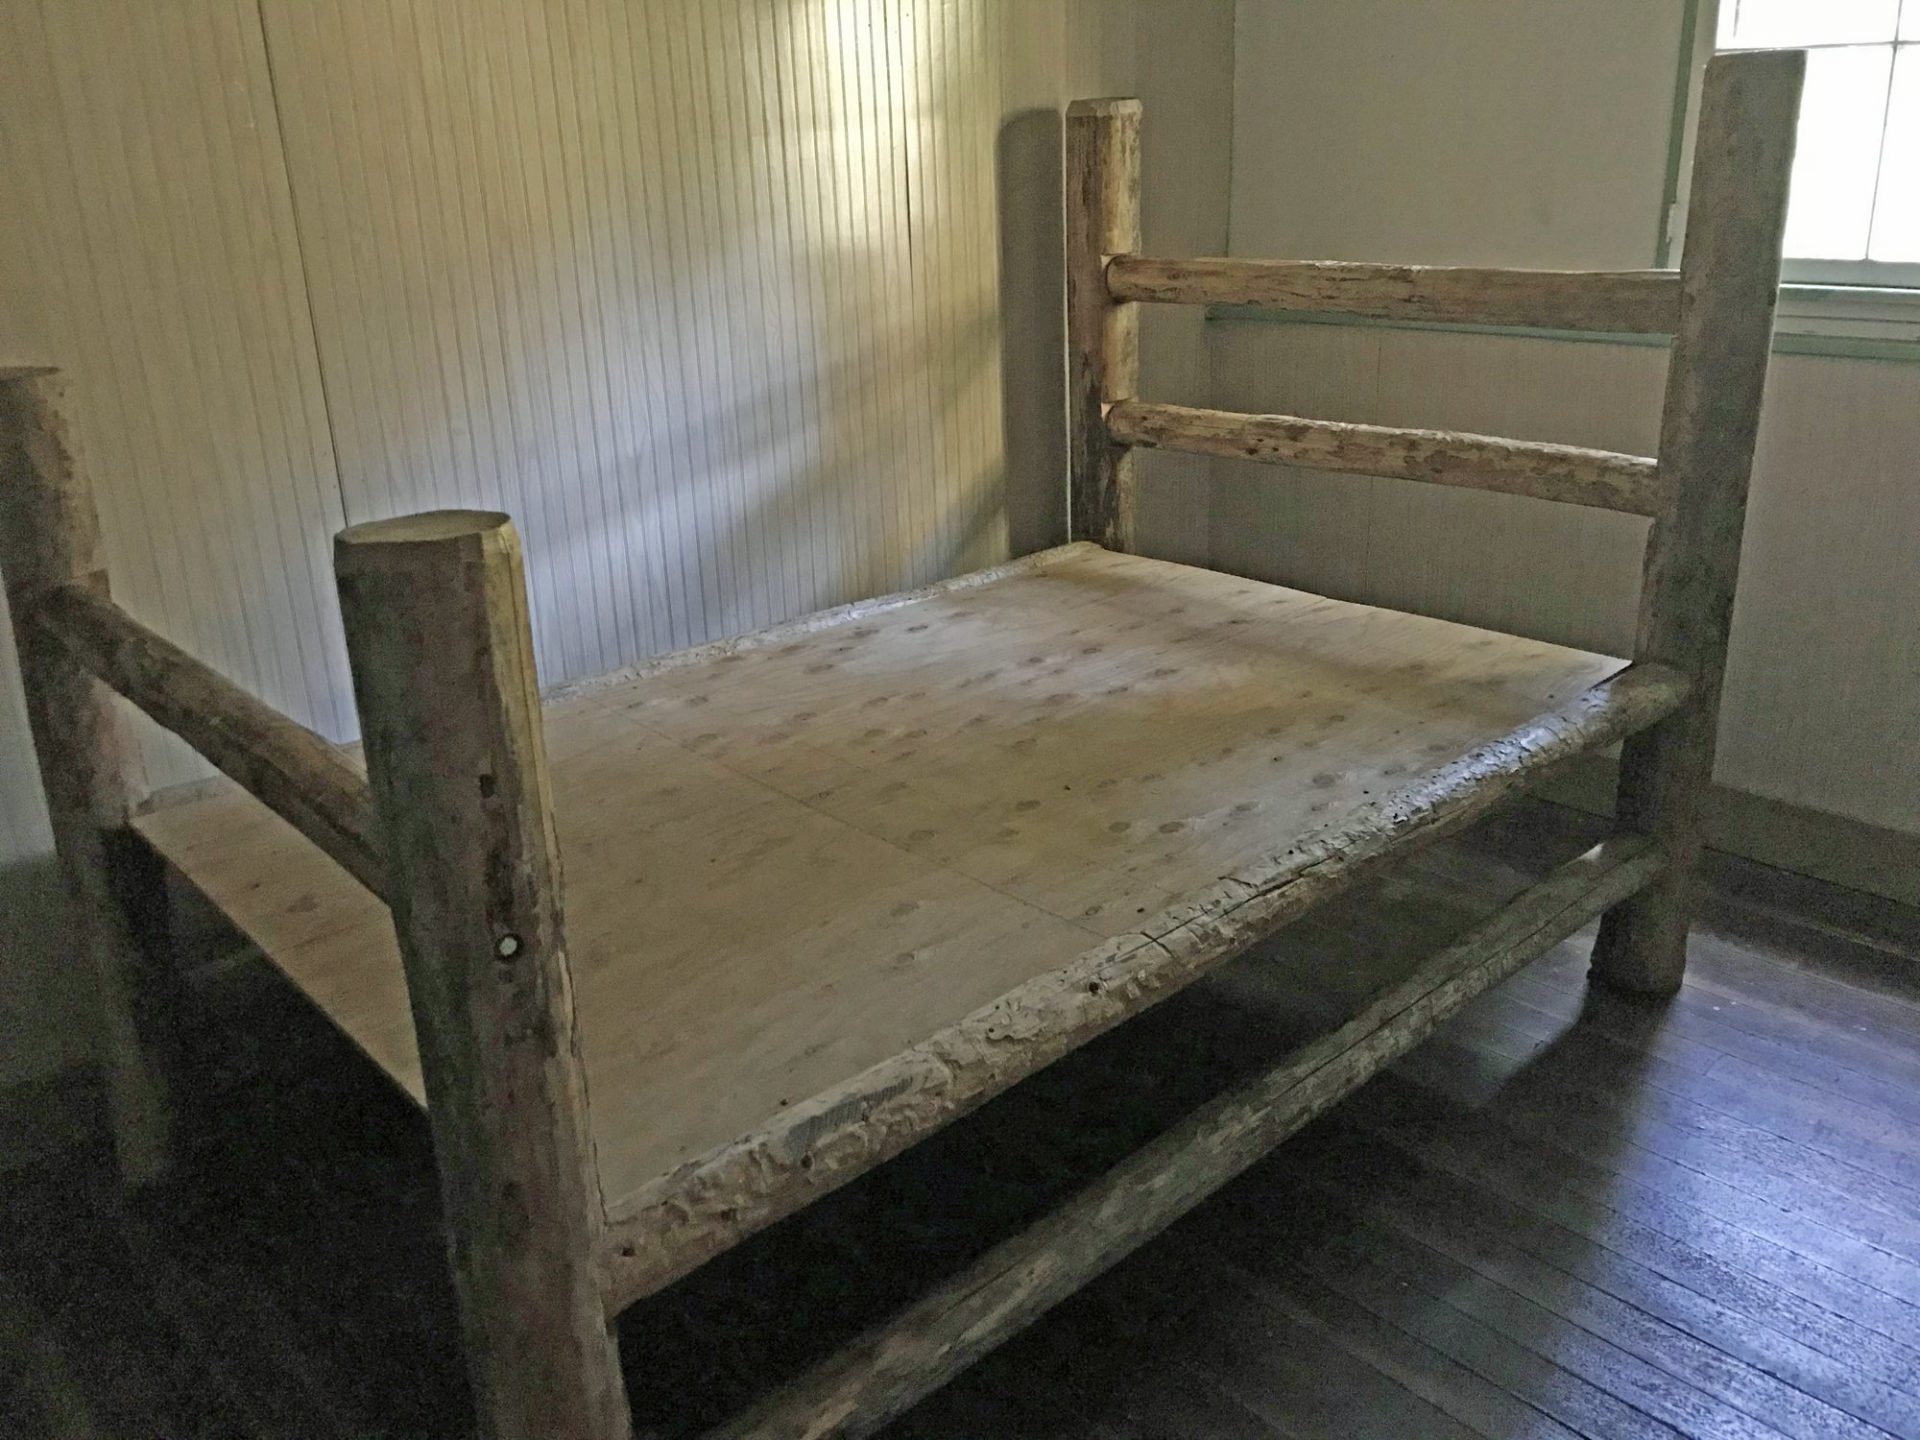 Musick Guard Station beds